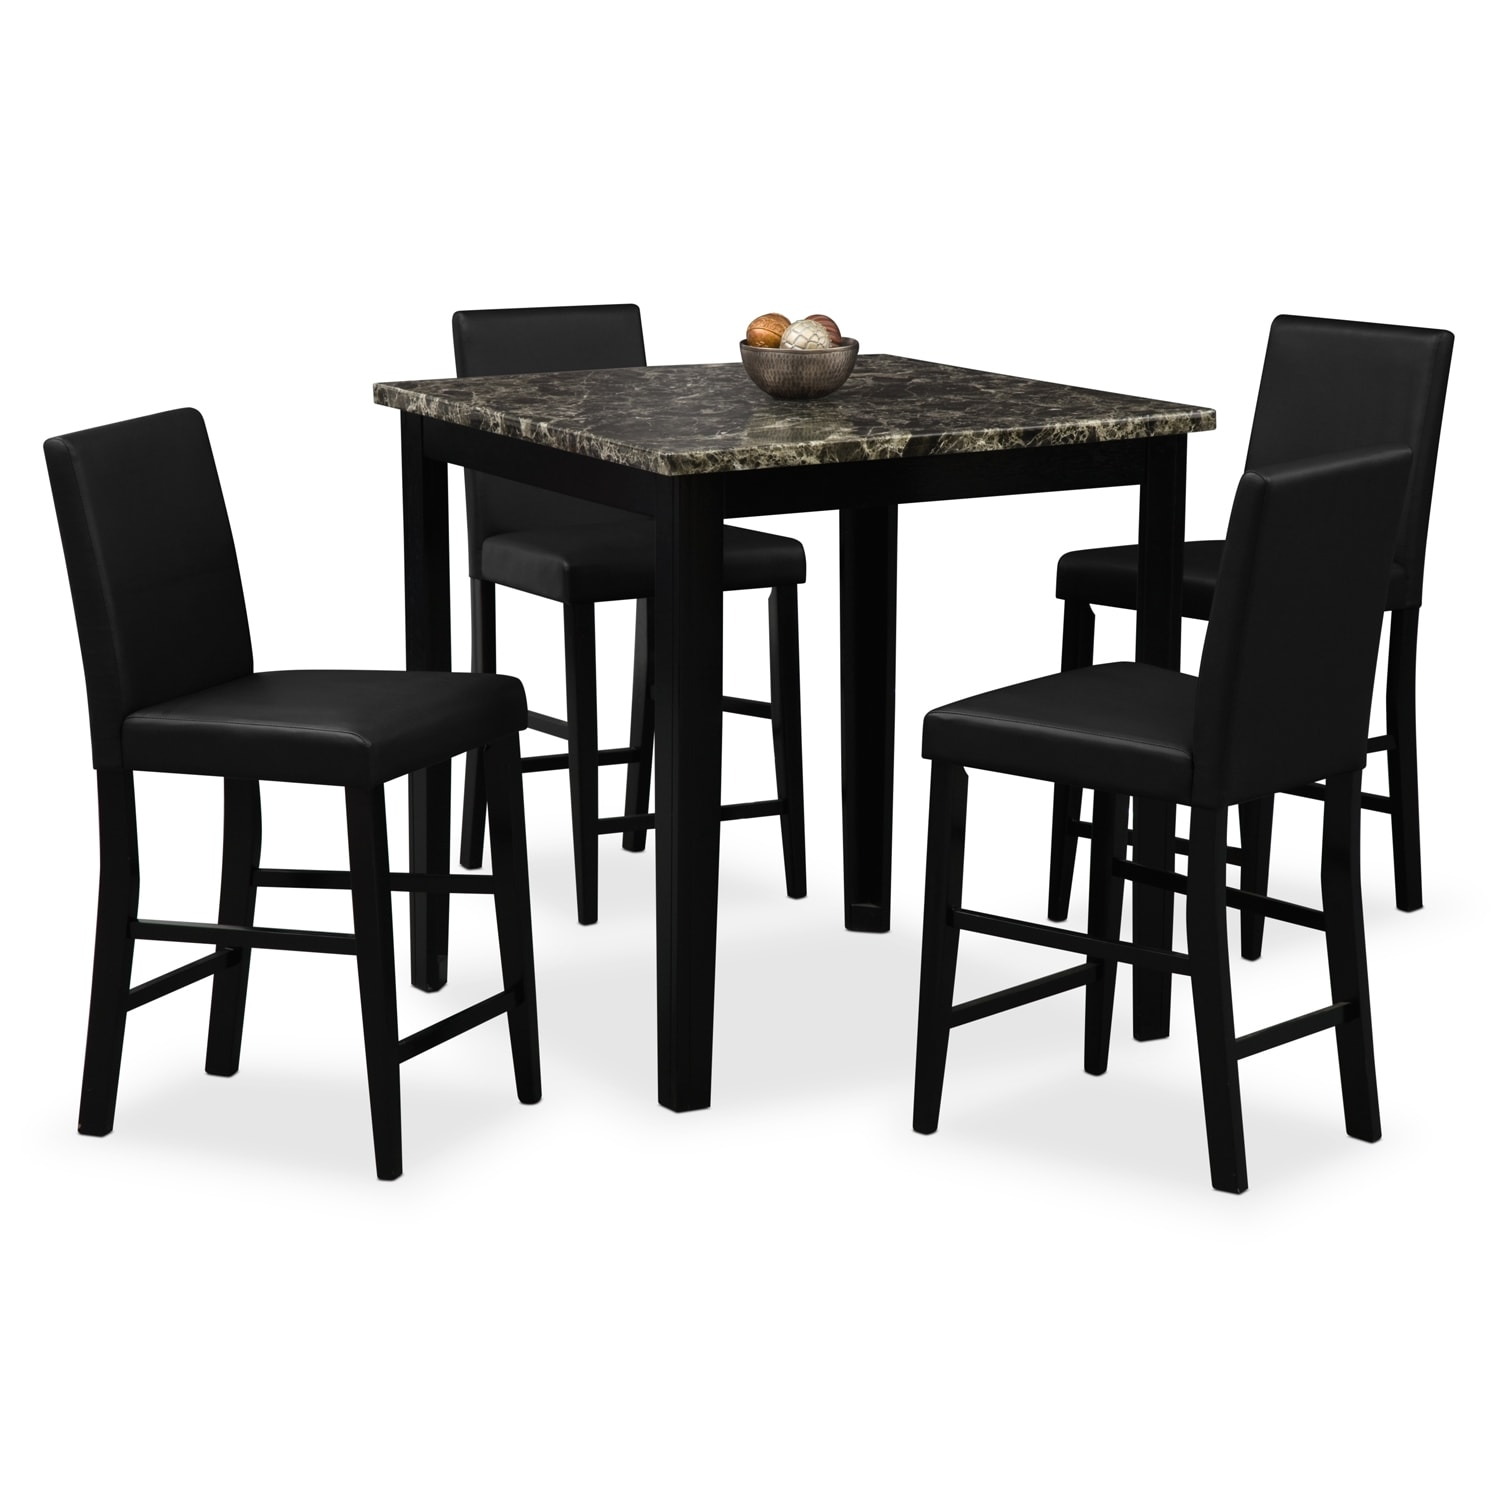 Shadow counter height table and 4 chairs black value for Dining room table for 4